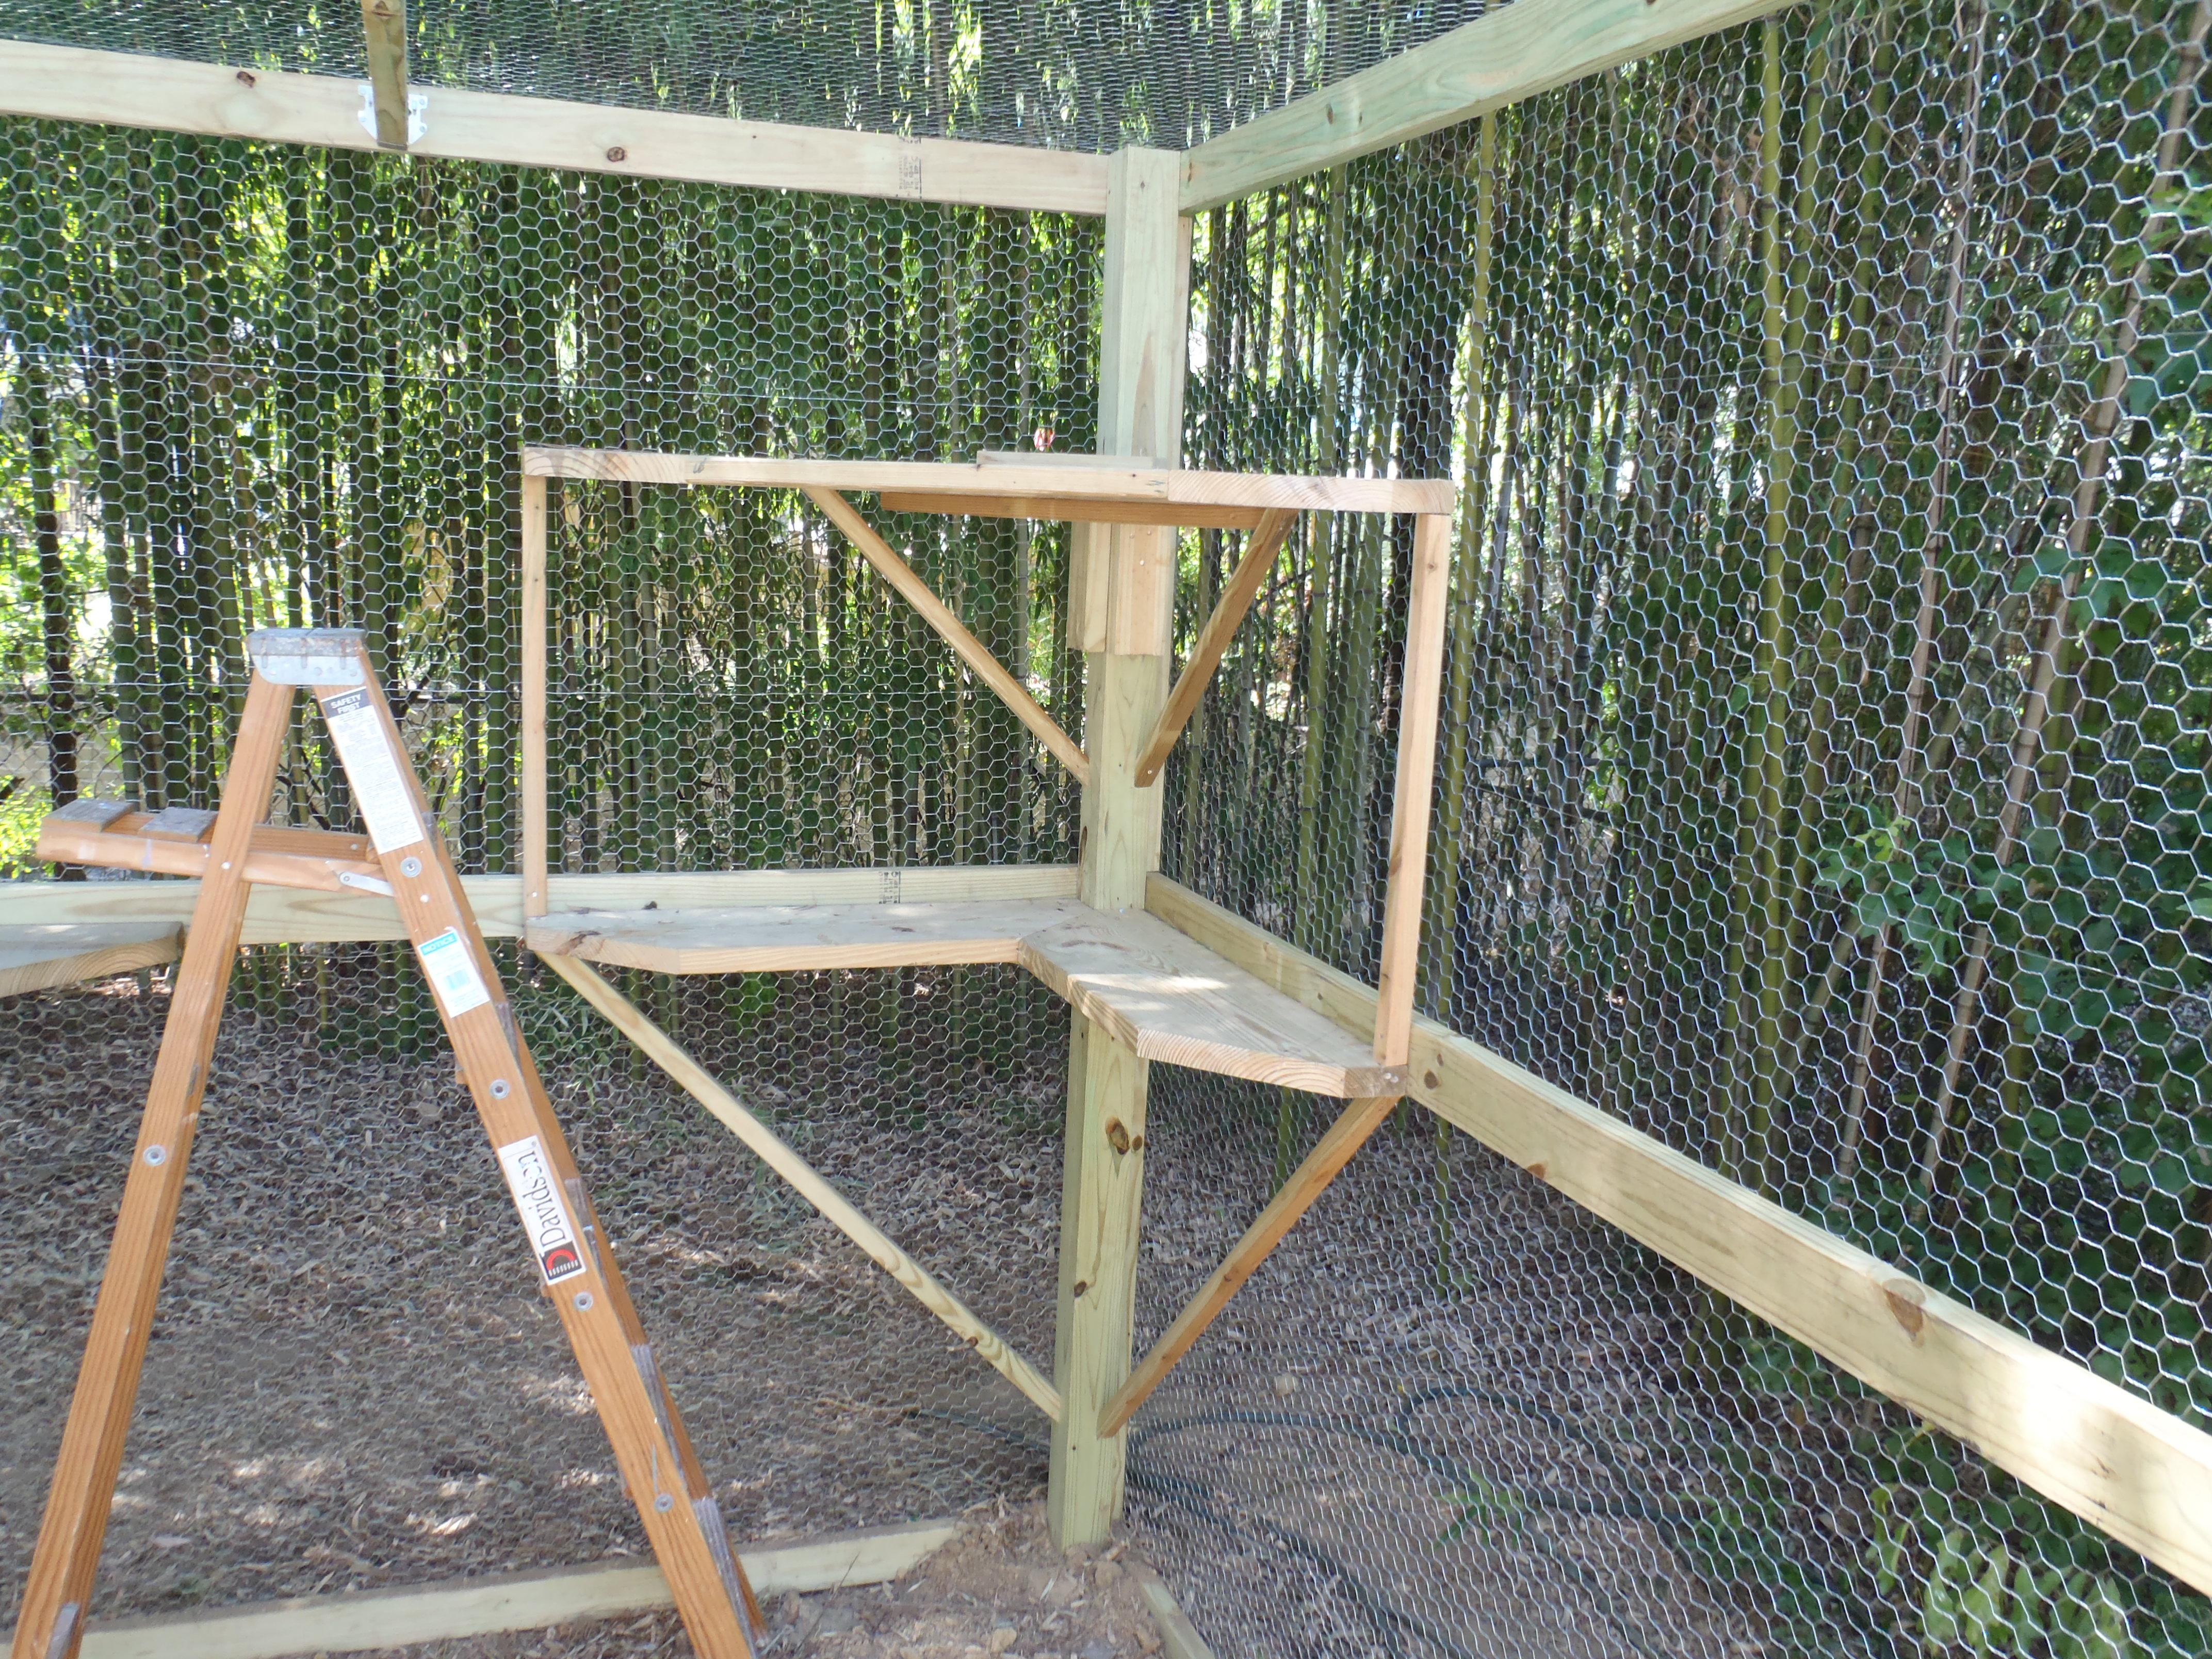 Ladder and shelves for the cats to play on